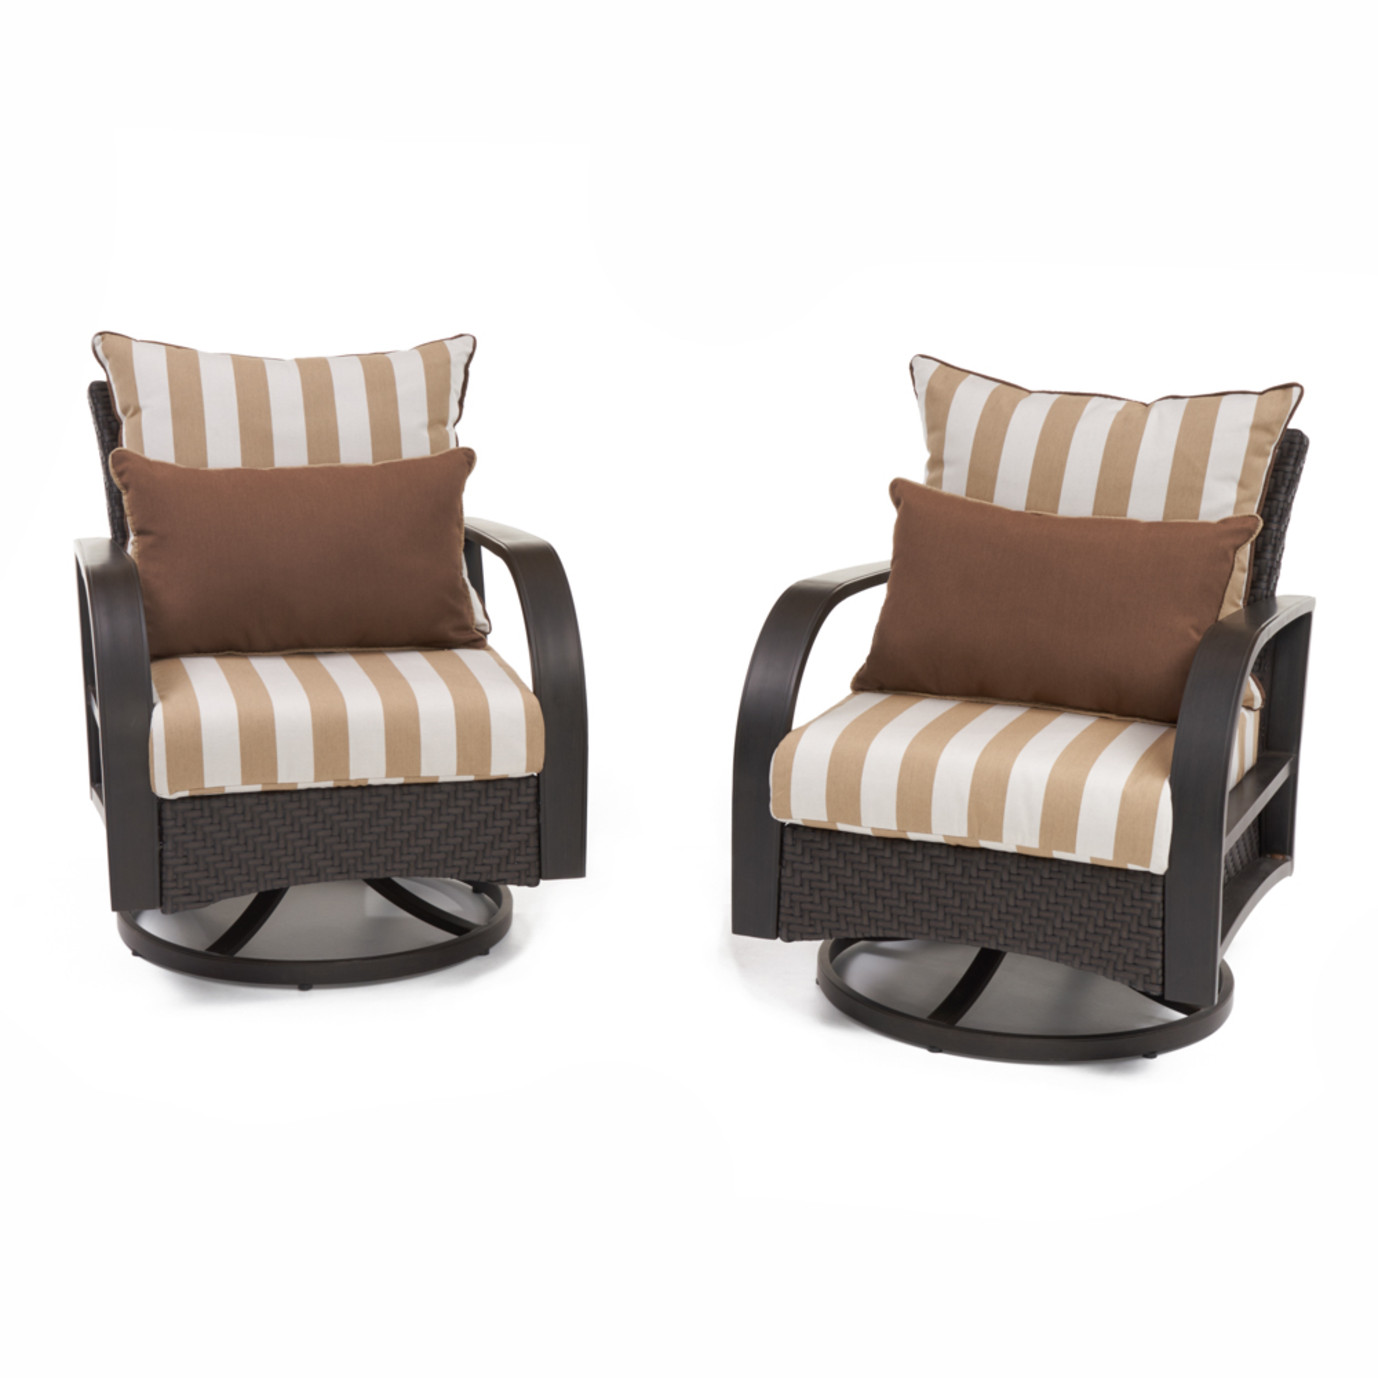 Barcelo™ Deluxe Motion Club Chairs - Maxim Beige